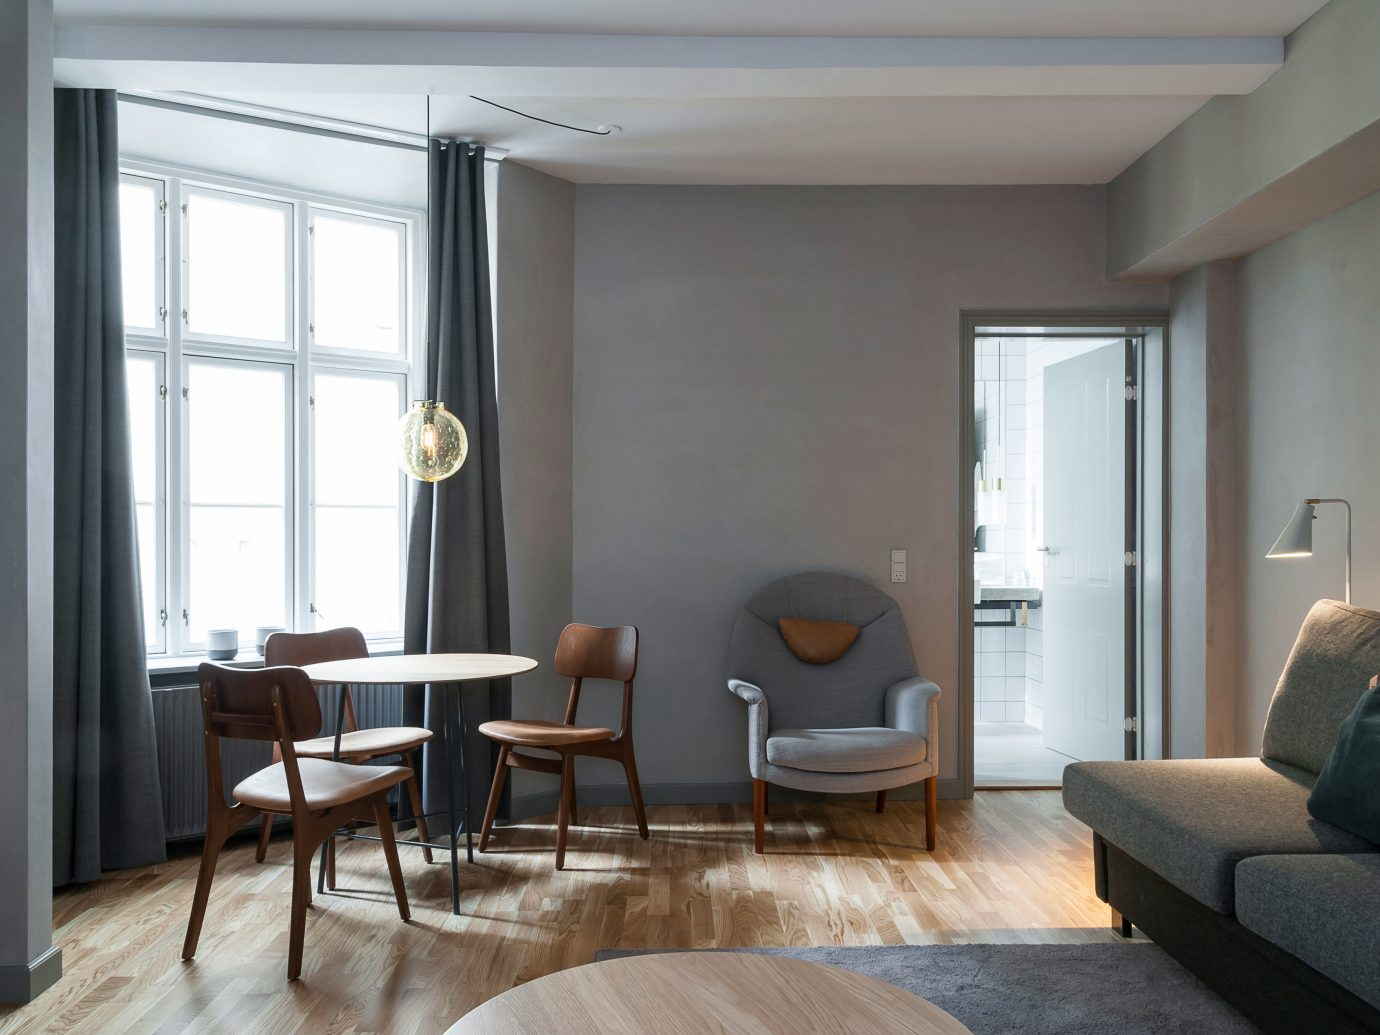 Boutique Hotels Copenhagen Denmark Hip Hotels Living Lounge Luxury Scenic views indoor floor wall room window ceiling property chair living room home interior design real estate hardwood condominium estate cottage apartment furniture area